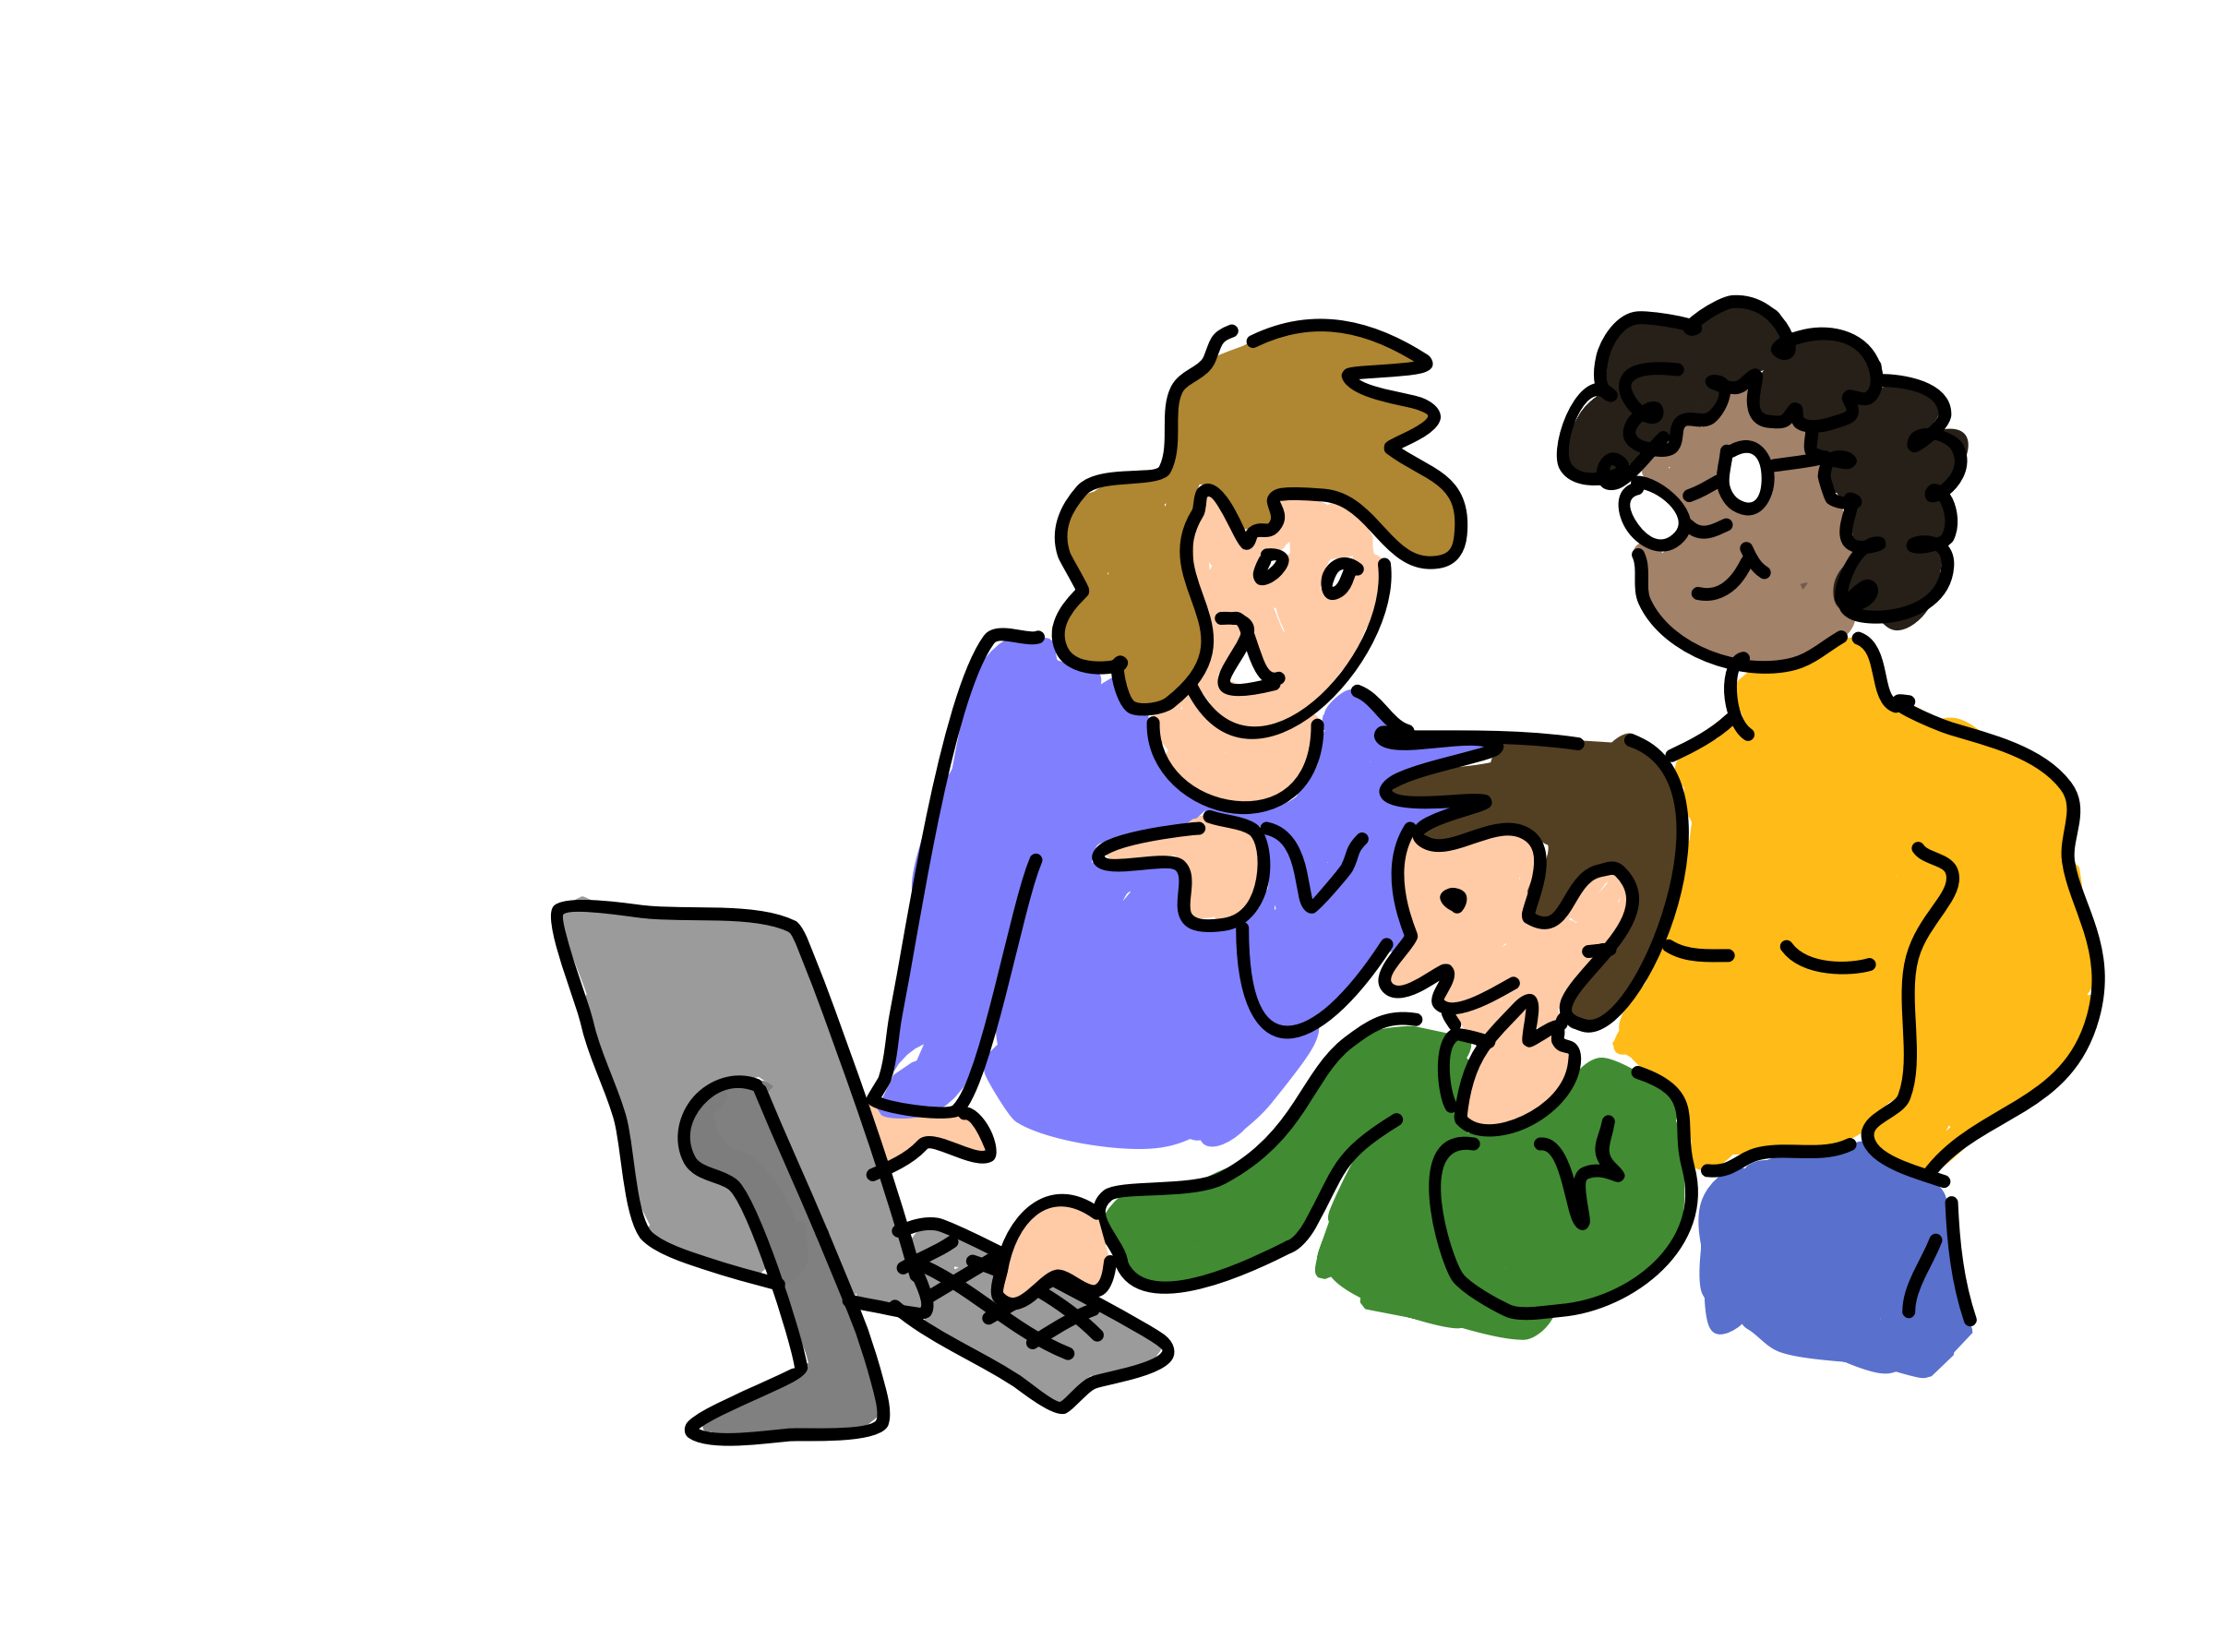 Three people working together vector clipart image.